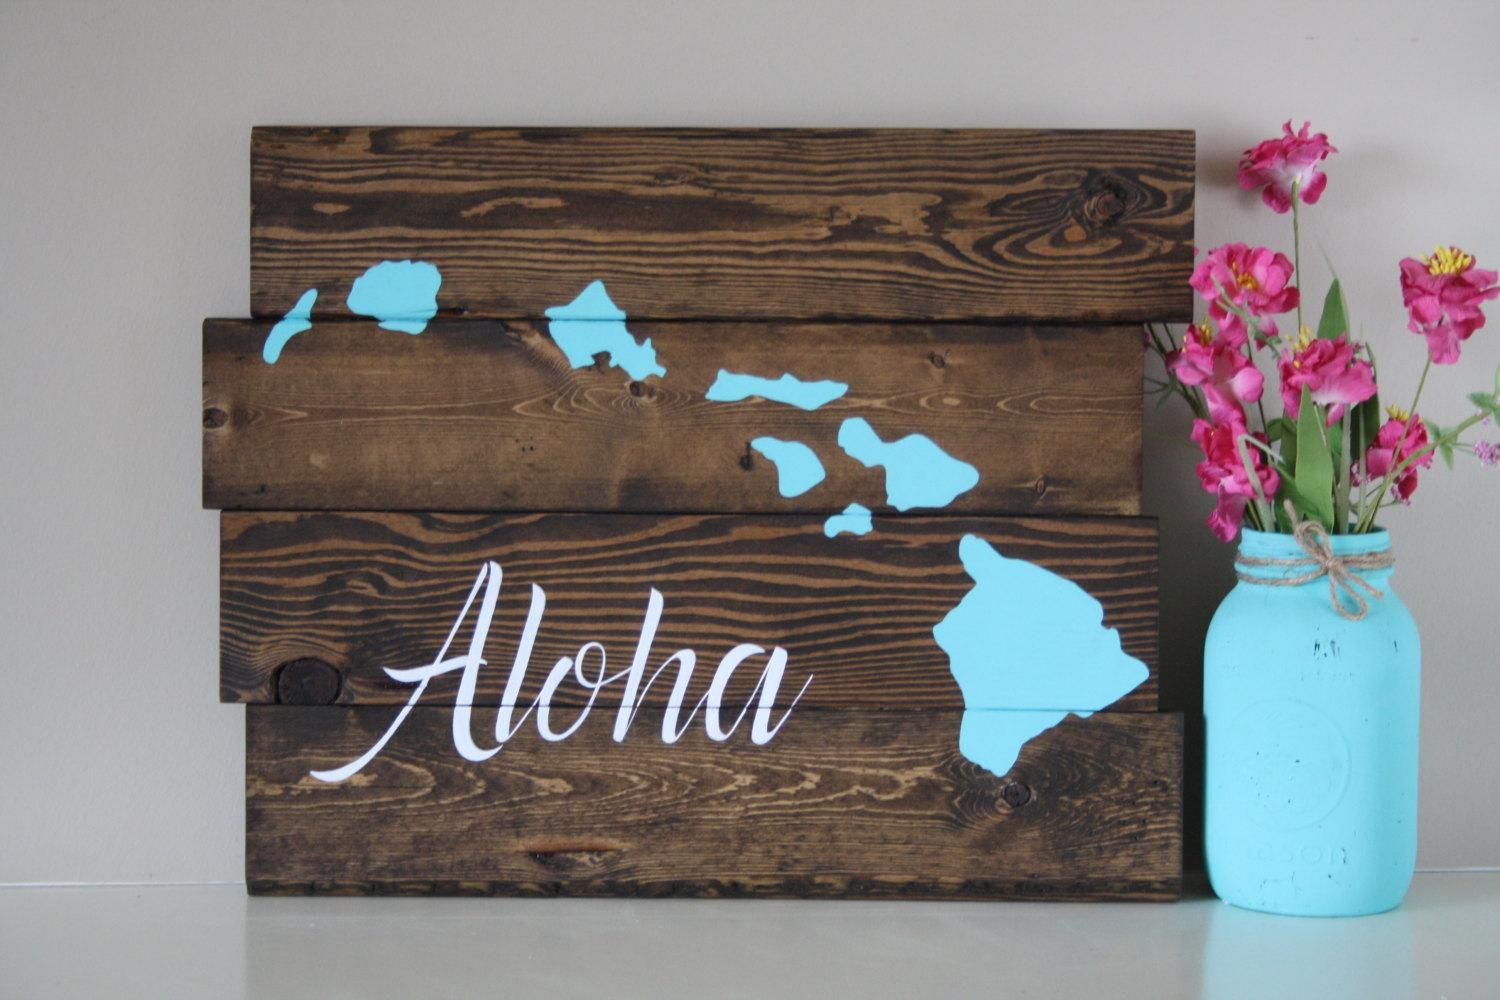 Reclaimed Wood Wall Art Aloha Hawaiian Island Reclaimed With Regard To Hawaiian Islands Wall Art (View 8 of 20)